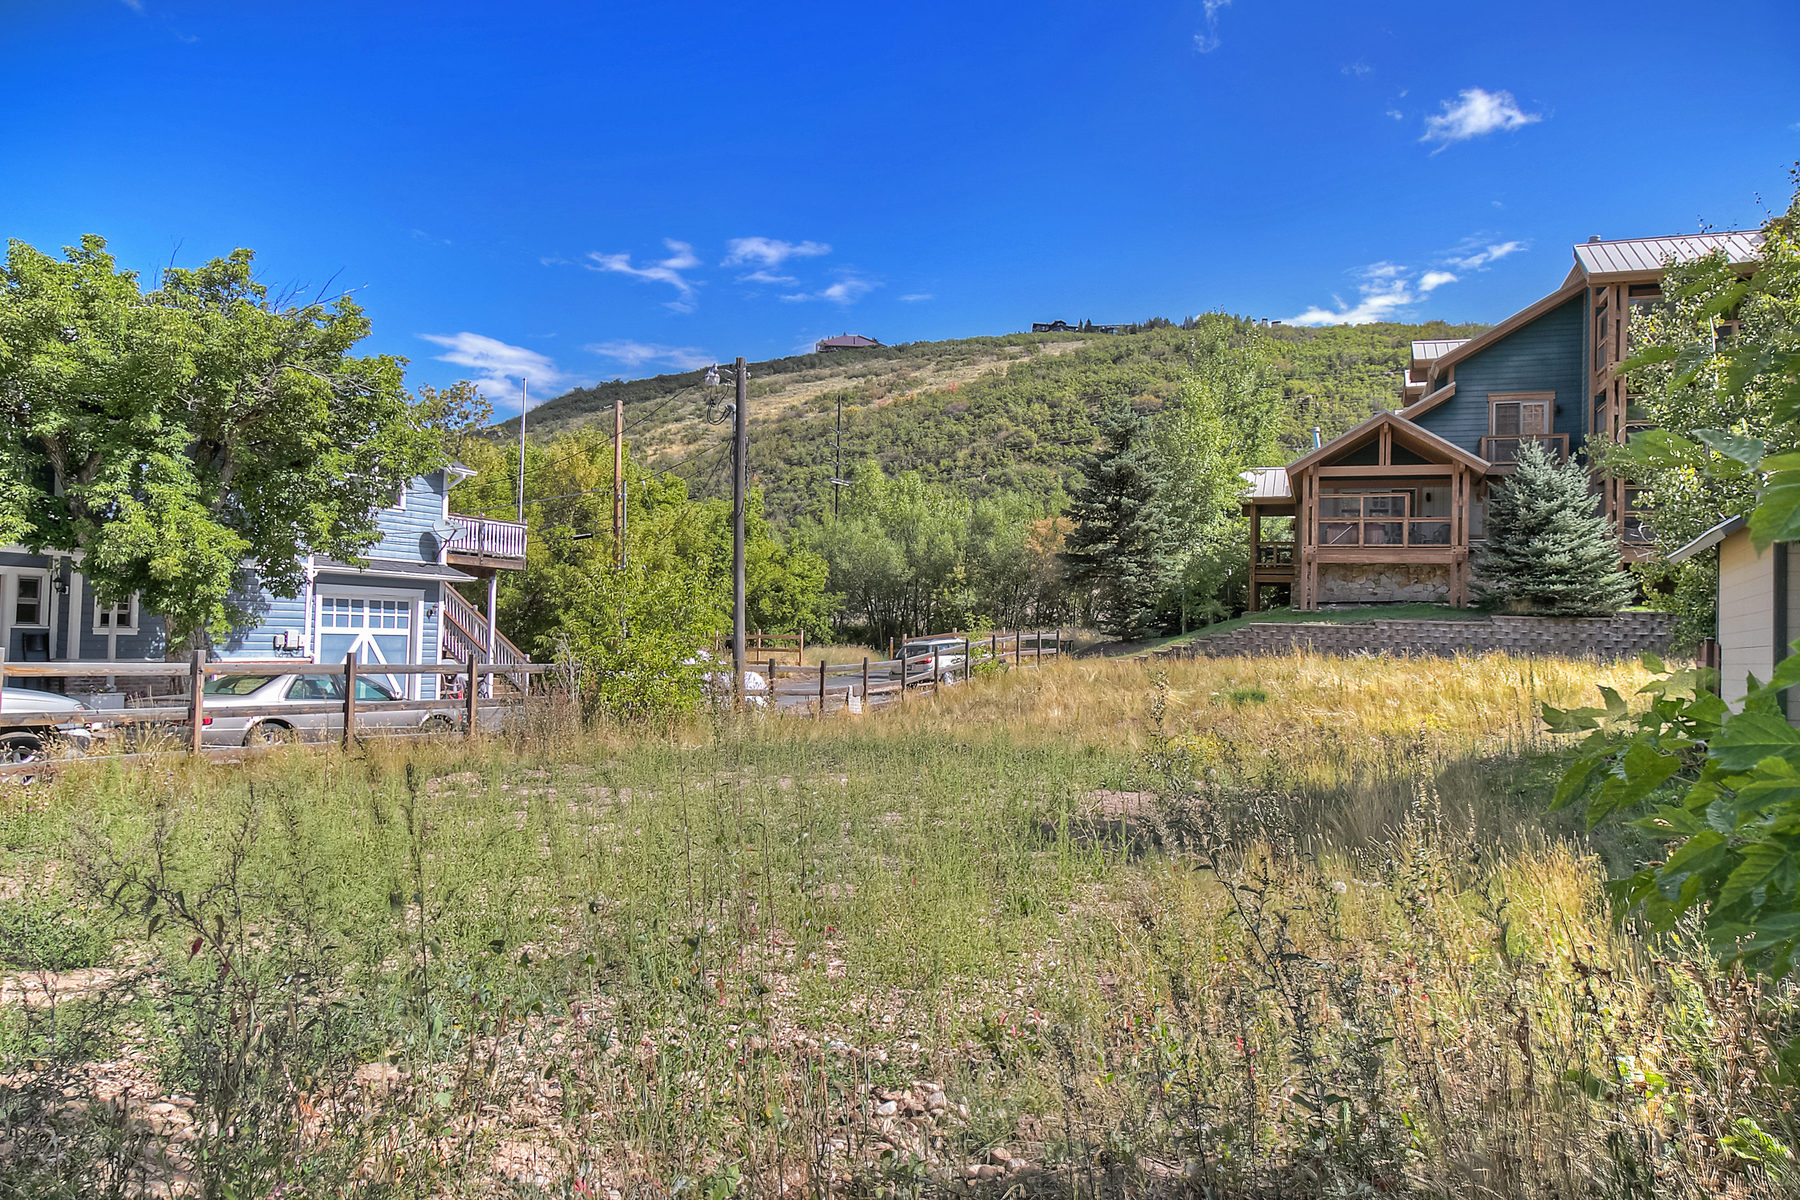 Additional photo for property listing at 3 Lot Development Opportunity 1064 Park Ave Lot 15 & Lot 16 Park City, Utah 84060 United States